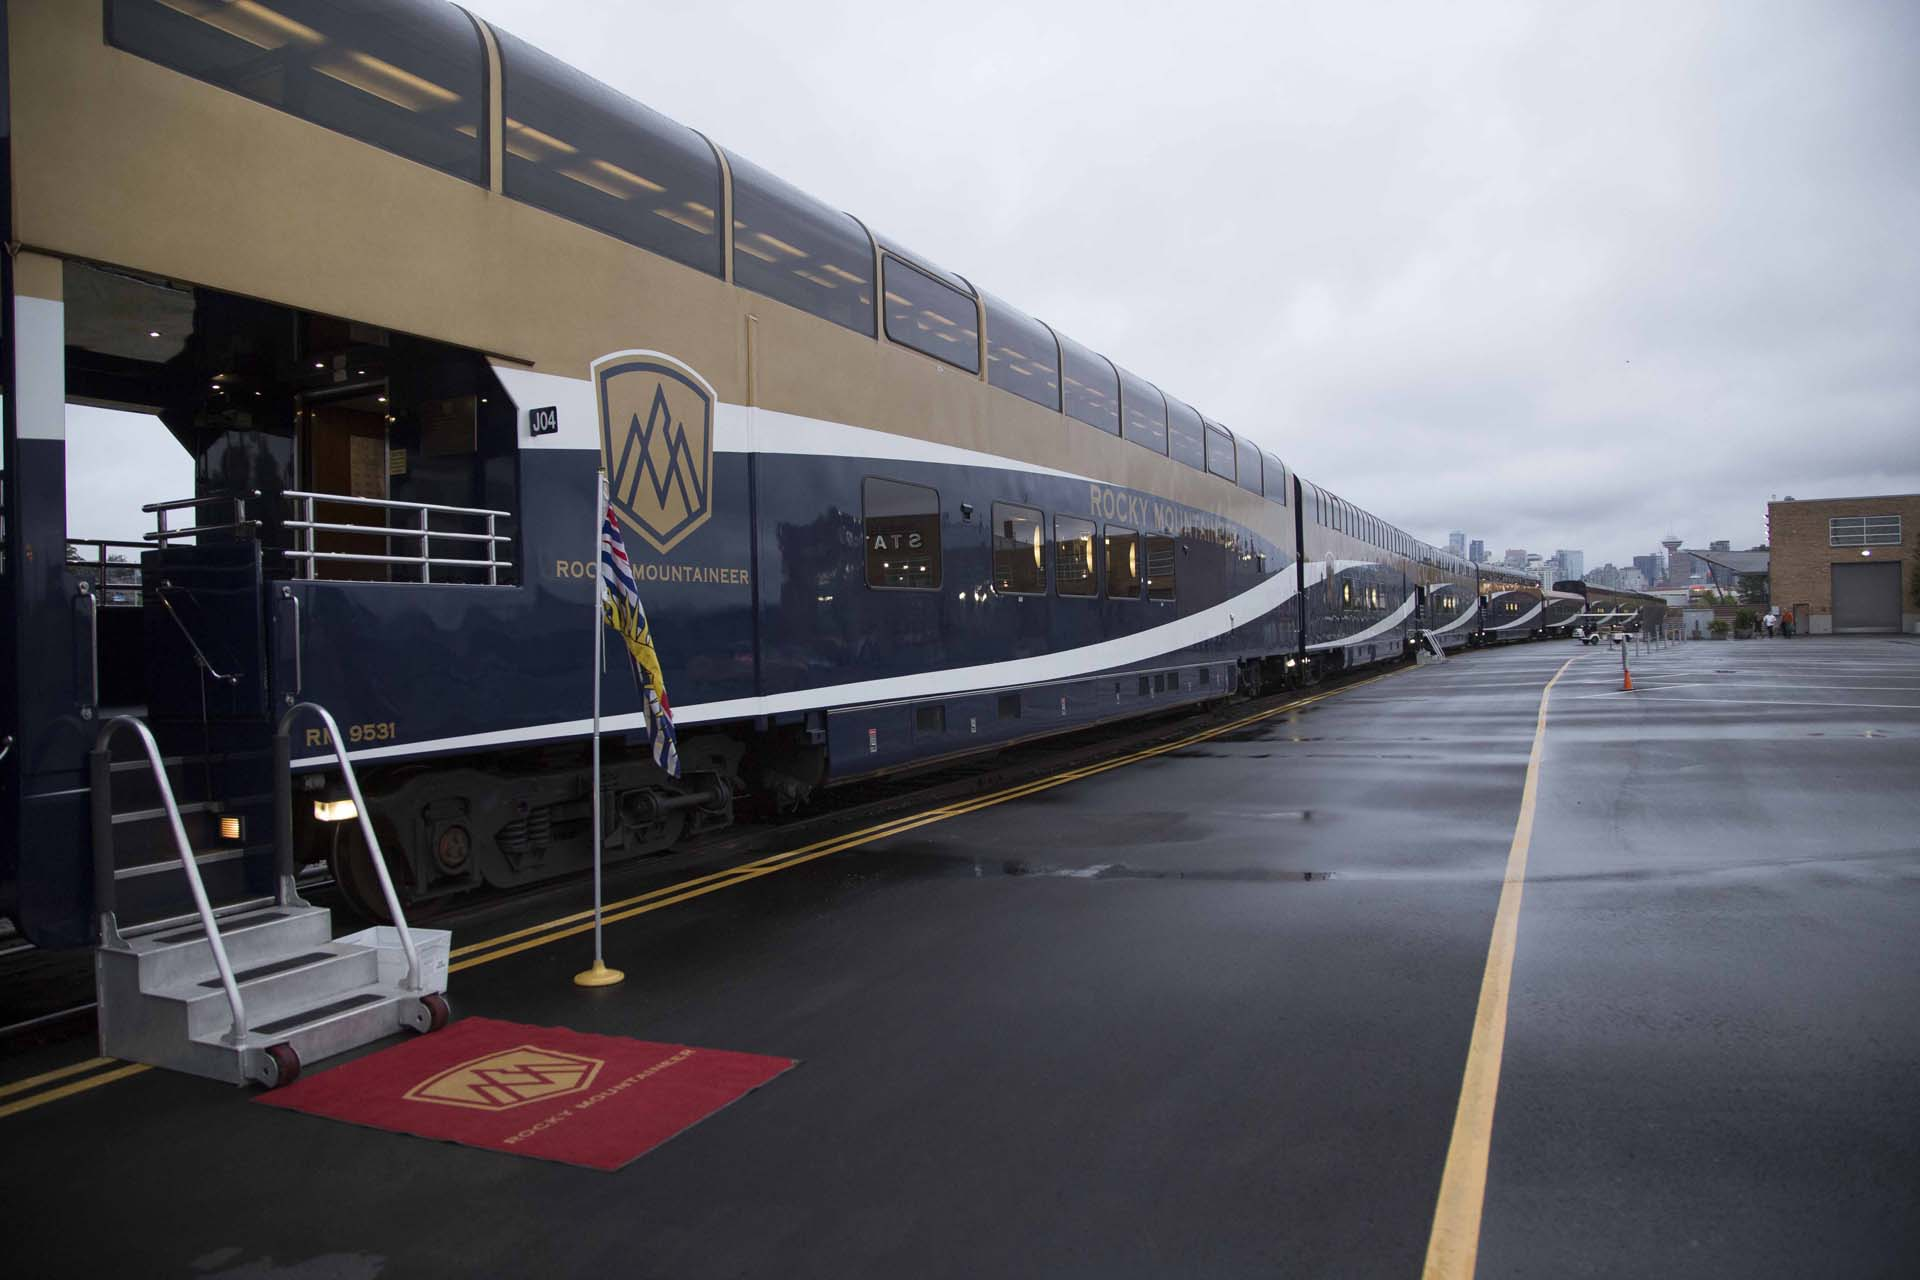 All aboard Rocky Mountaineer